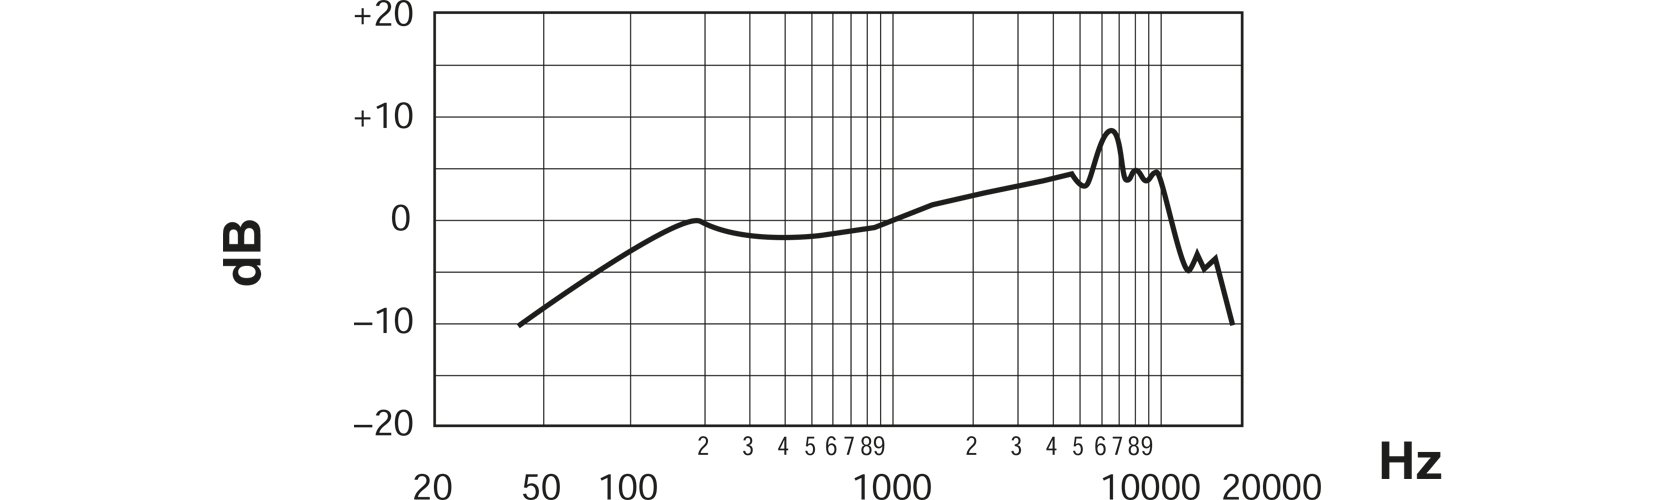 Shure 55SH II Legendary 'Elvis Microphone' Frequency Response Curve Image